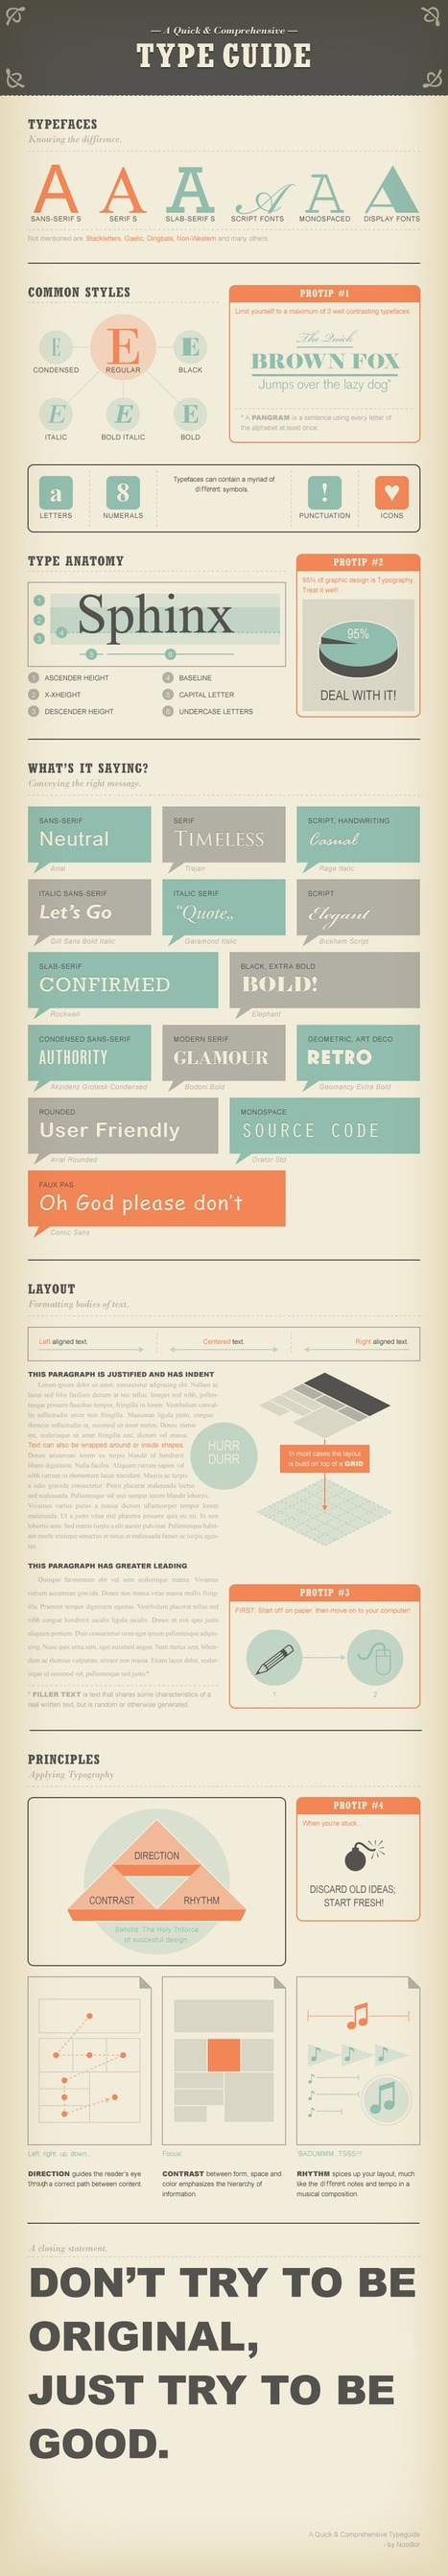 A guide to typography (Infographic) | check it out! | Time to Learn | Scoop.it